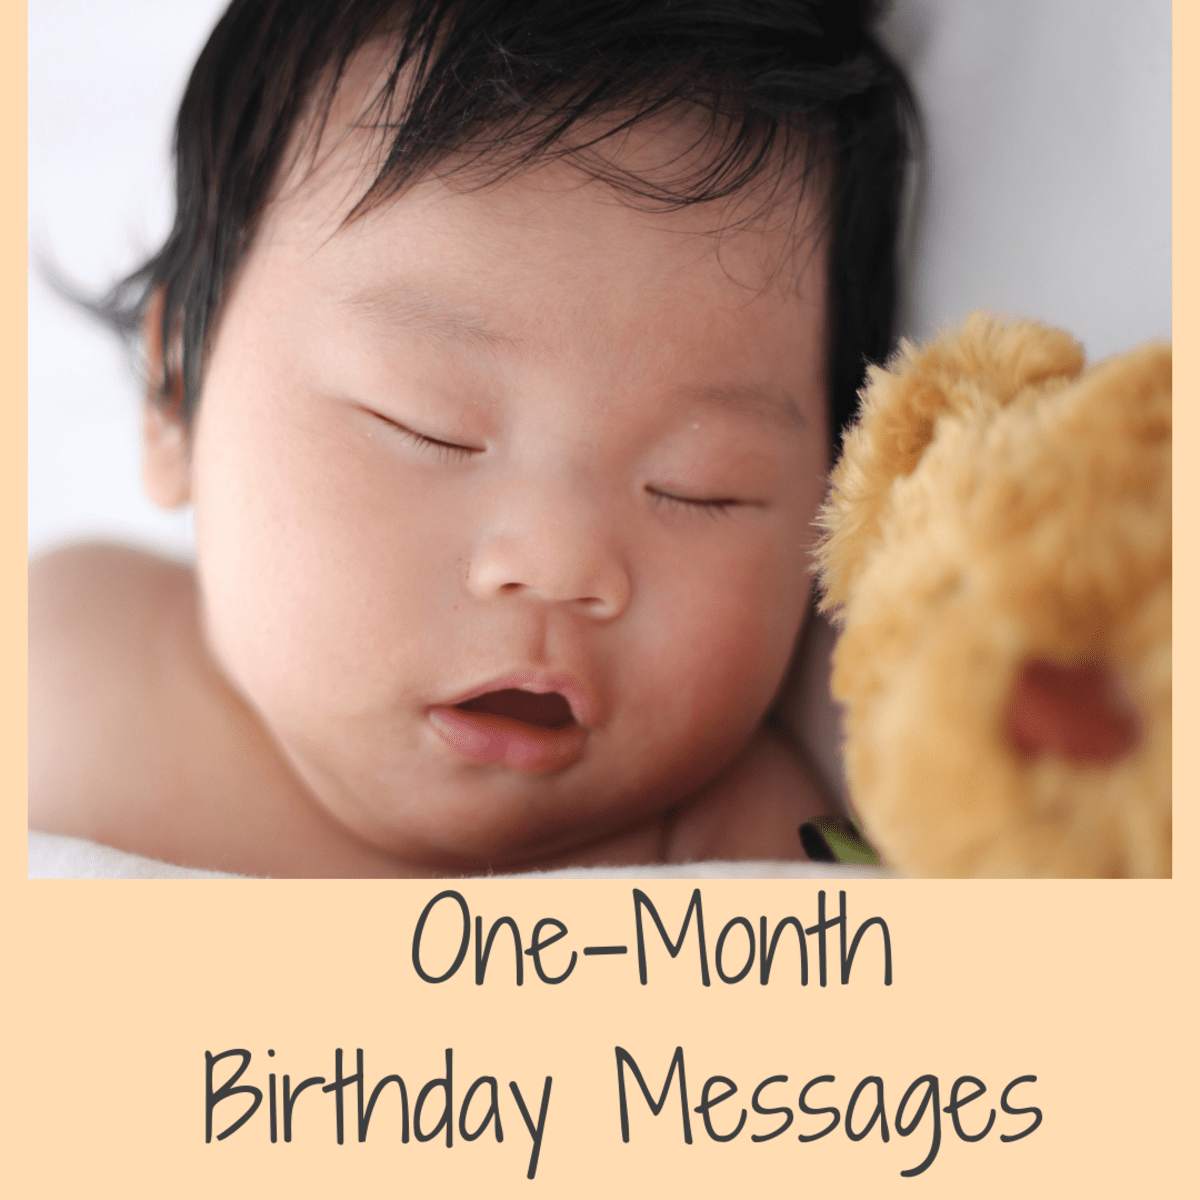 Happy Full Moon Baby Wishes What To Write In One Month Birthday Card Holidappy Celebrations